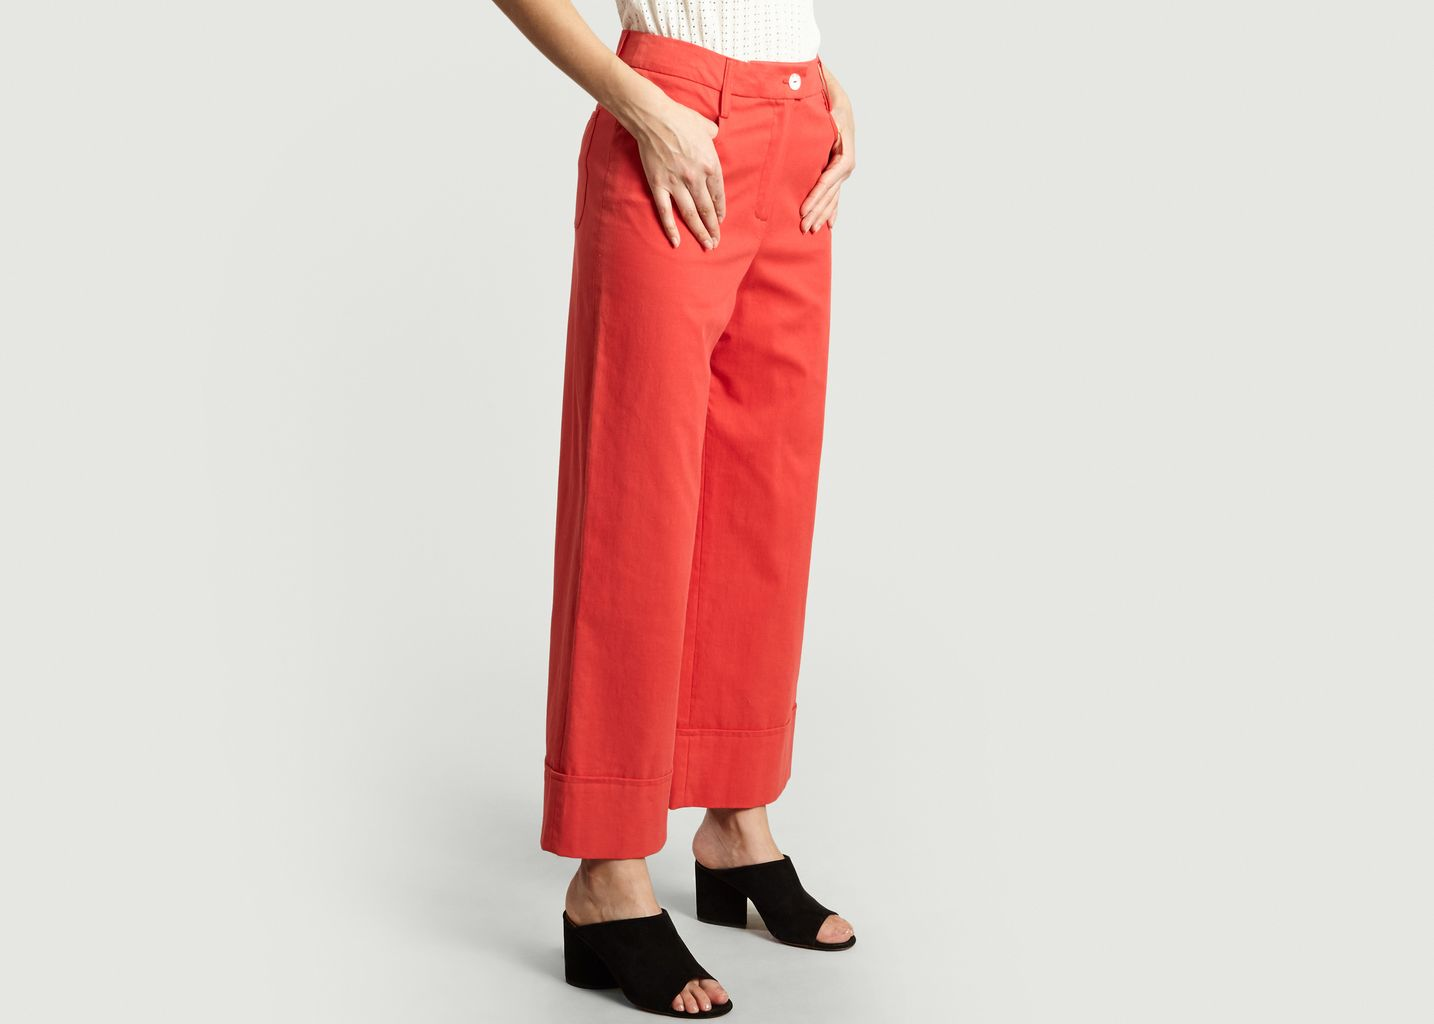 Pantalon 7/8ème - Cacharel